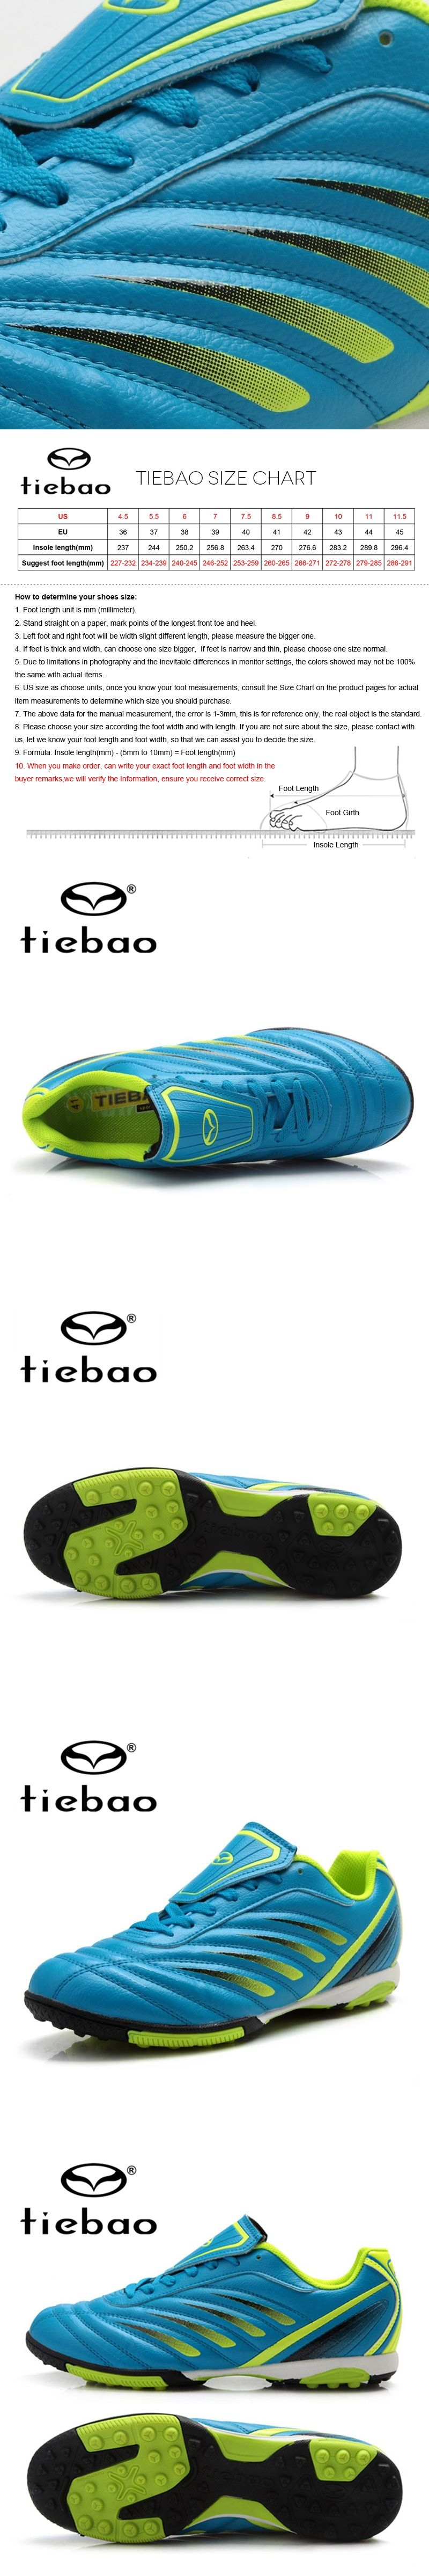 fdd4d3e523a TIEBAO Professional Outdoor Adult Soccer Shoes Men Women TF Turf Rubber  Soles Football Boots Athletic Training